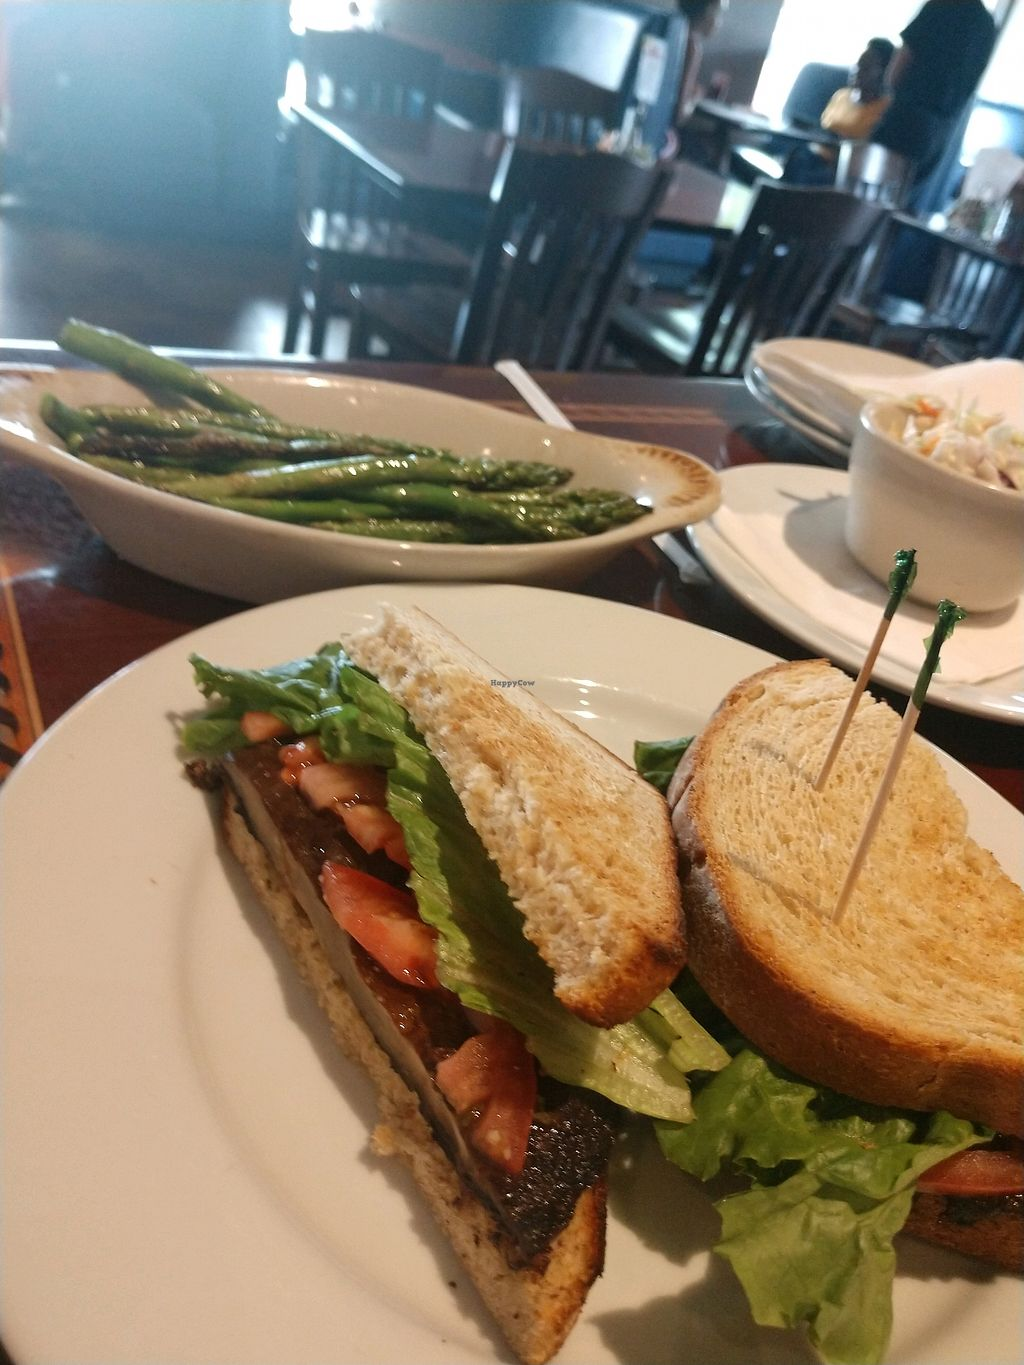 """Photo of Ethos Vegan Kitchen  by <a href=""""/members/profile/JoanDownen"""">JoanDownen</a> <br/>Fungus Among Us, Asparagus, and Cole Slaw <br/> May 18, 2018  - <a href='/contact/abuse/image/12683/401660'>Report</a>"""